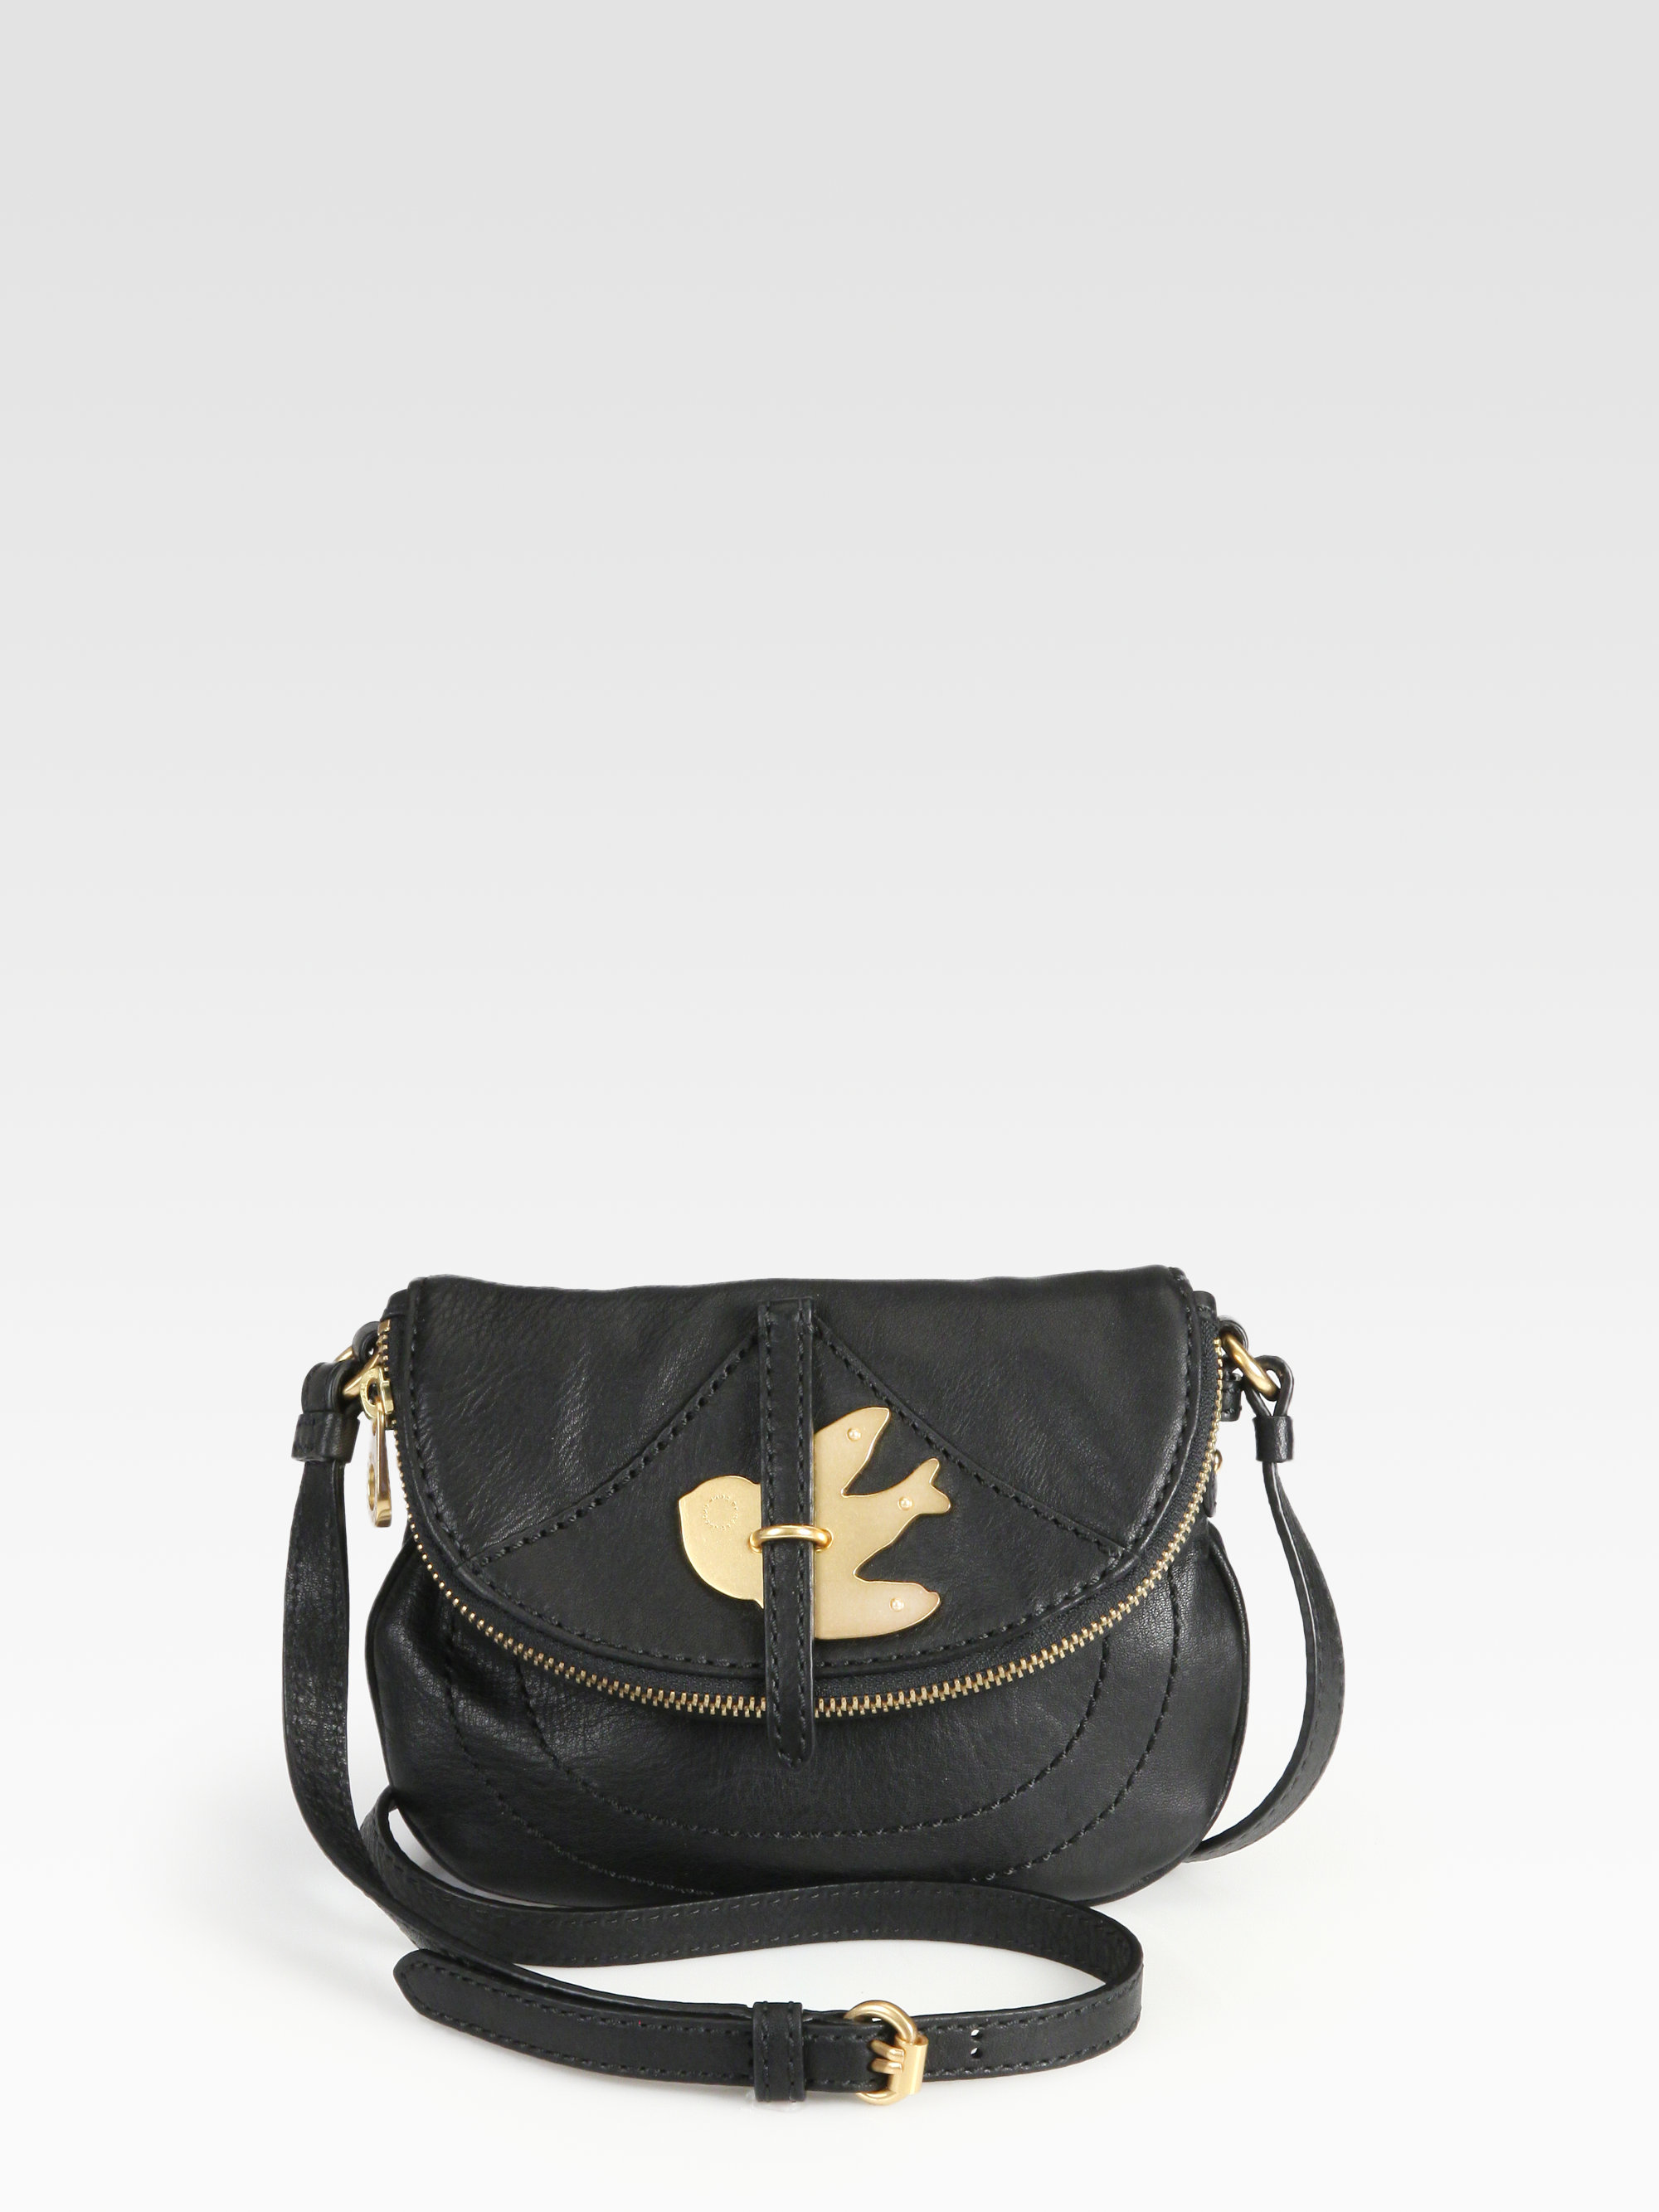 40caa8f4bc02 Lyst - Marc By Marc Jacobs Petal To The Metal Pouchette Crossbody ...